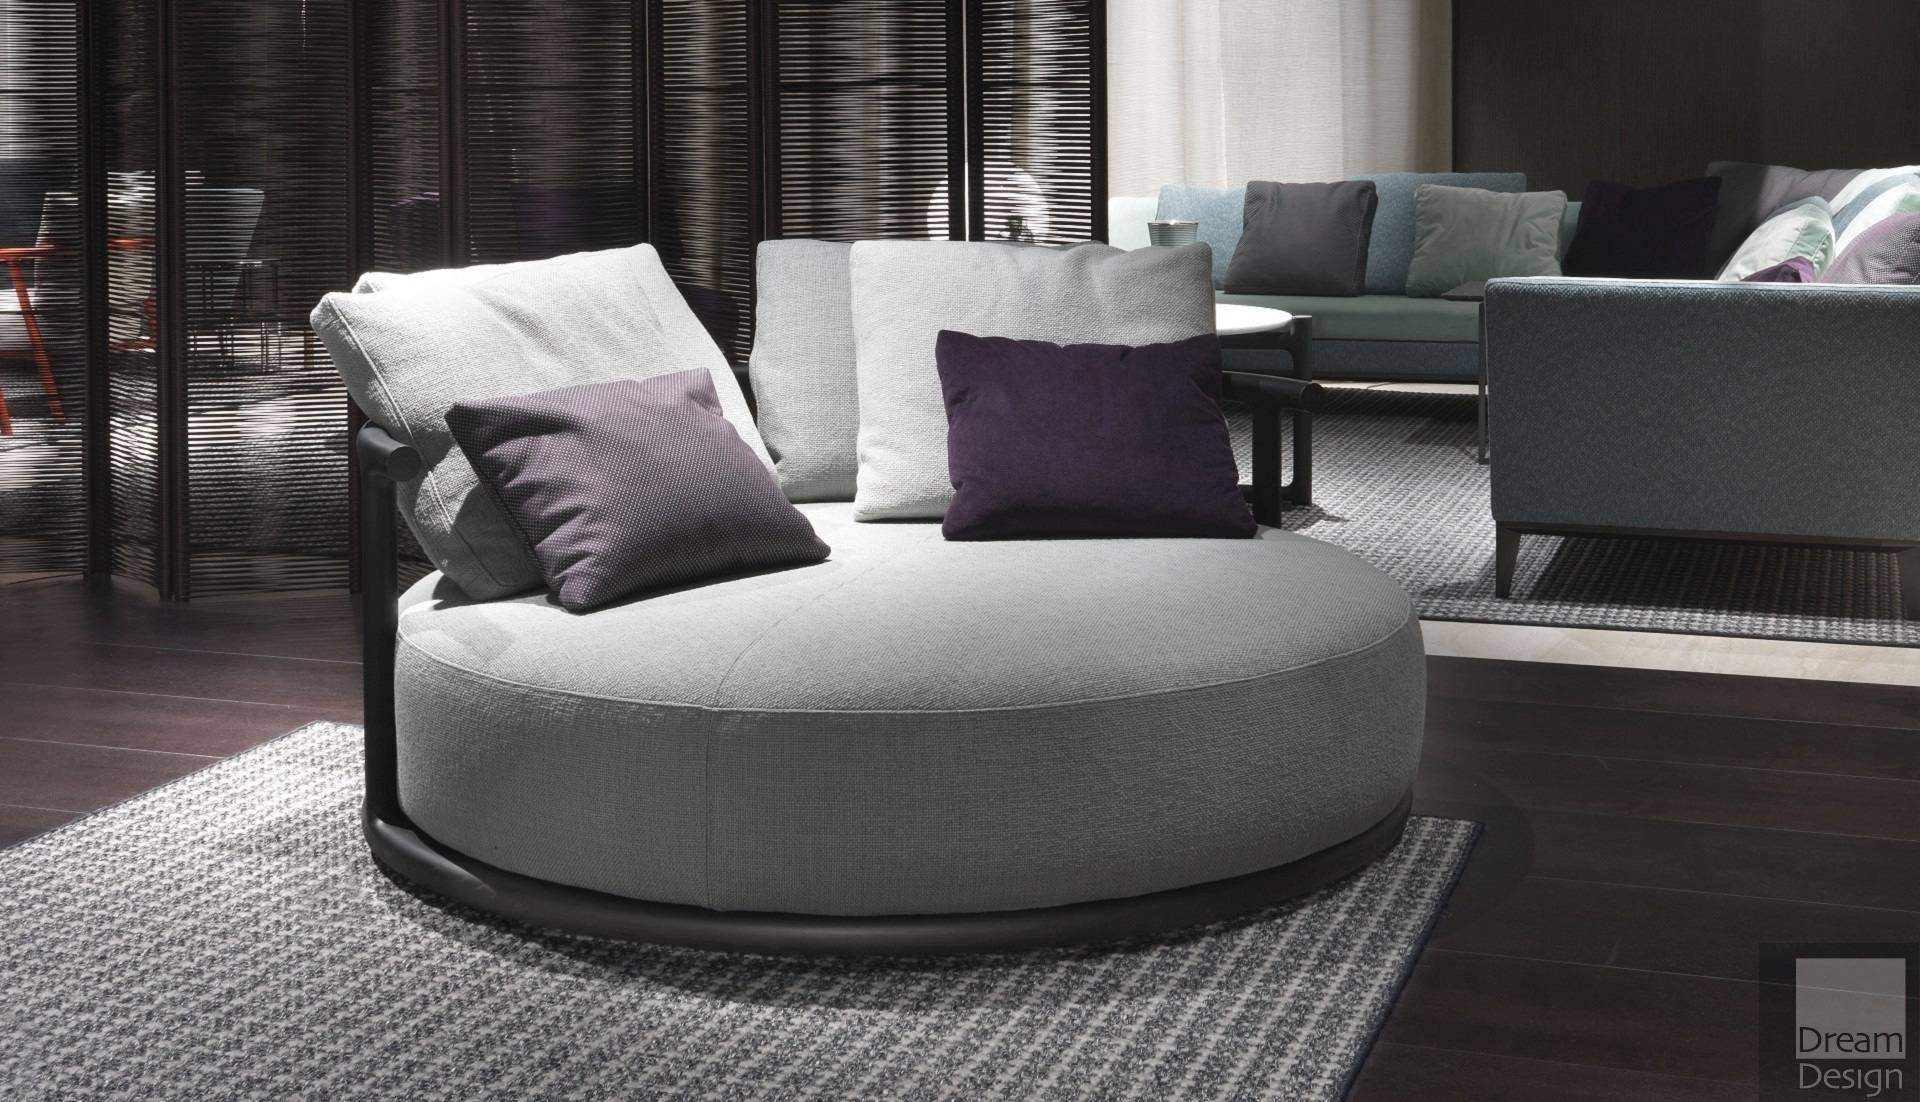 Full Size of Liege Couch Wohnzimmer Lounge Liege Wohnzimmer Ergonomische Liege Wohnzimmer Liege Holz Wohnzimmer Wohnzimmer Liege Wohnzimmer